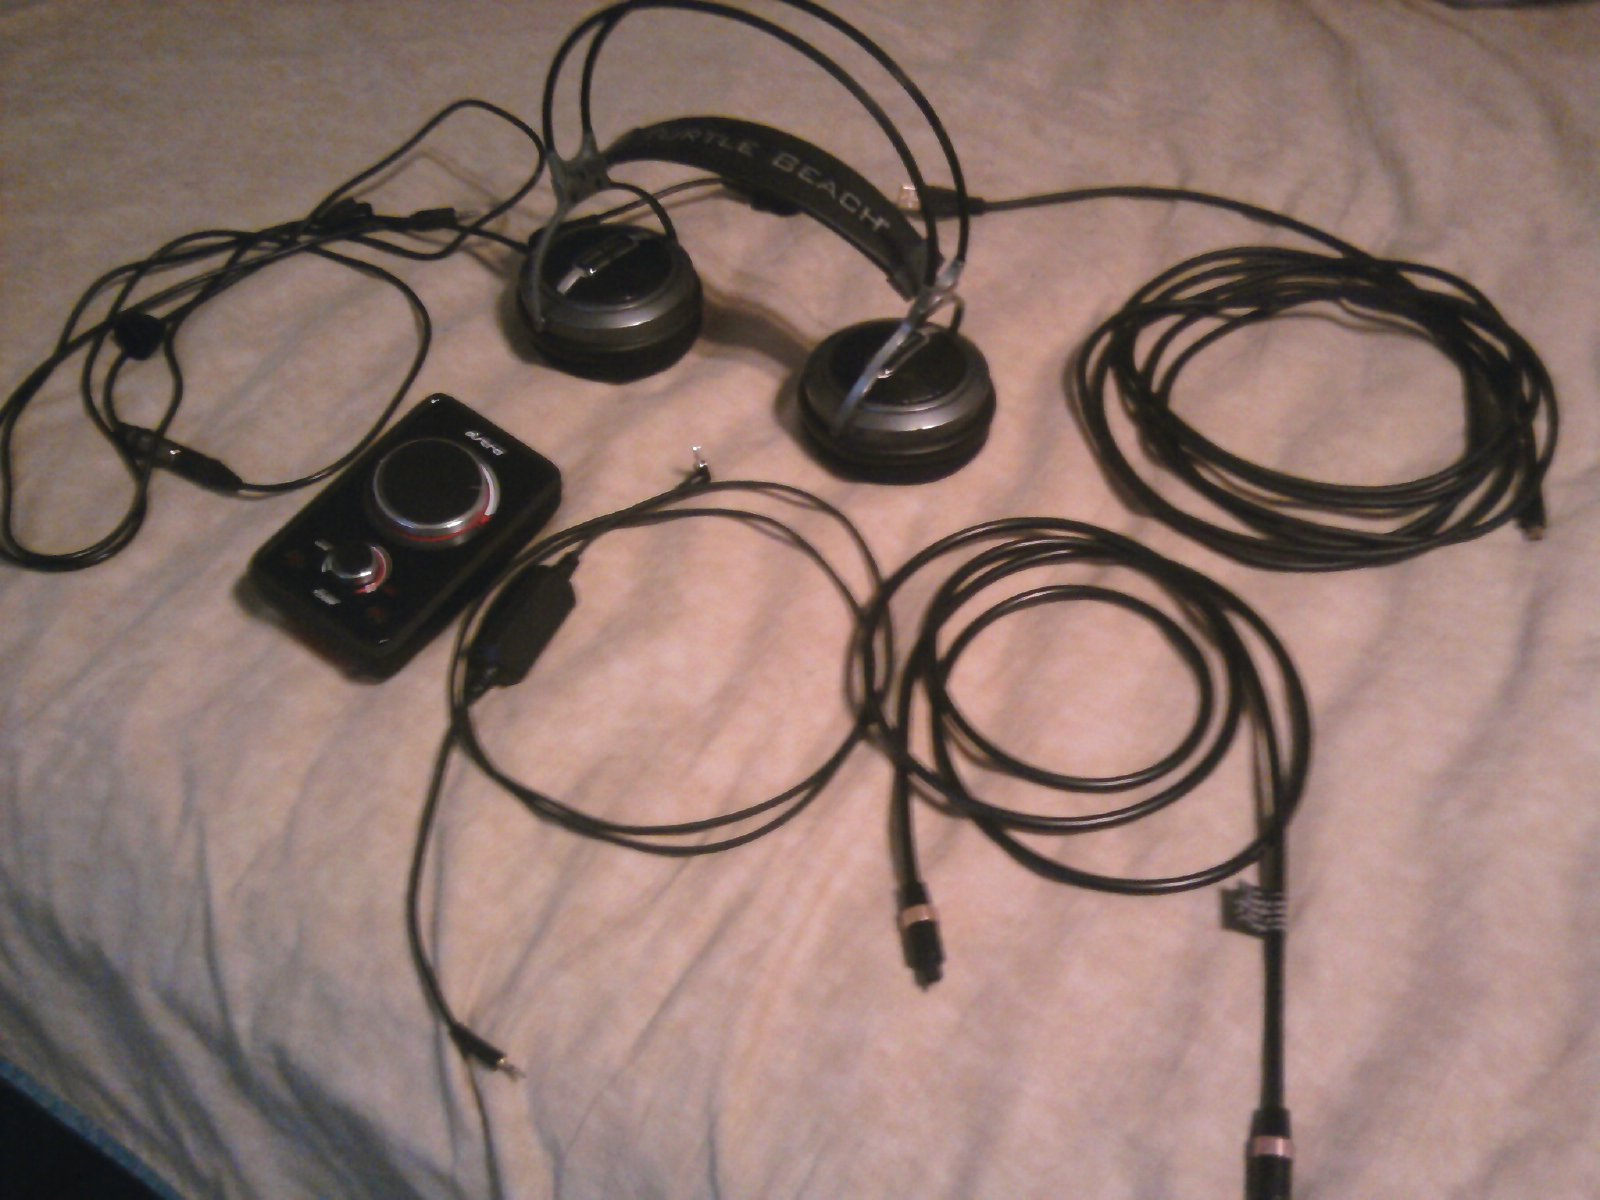 Turtlebeach HPX and astormix amp